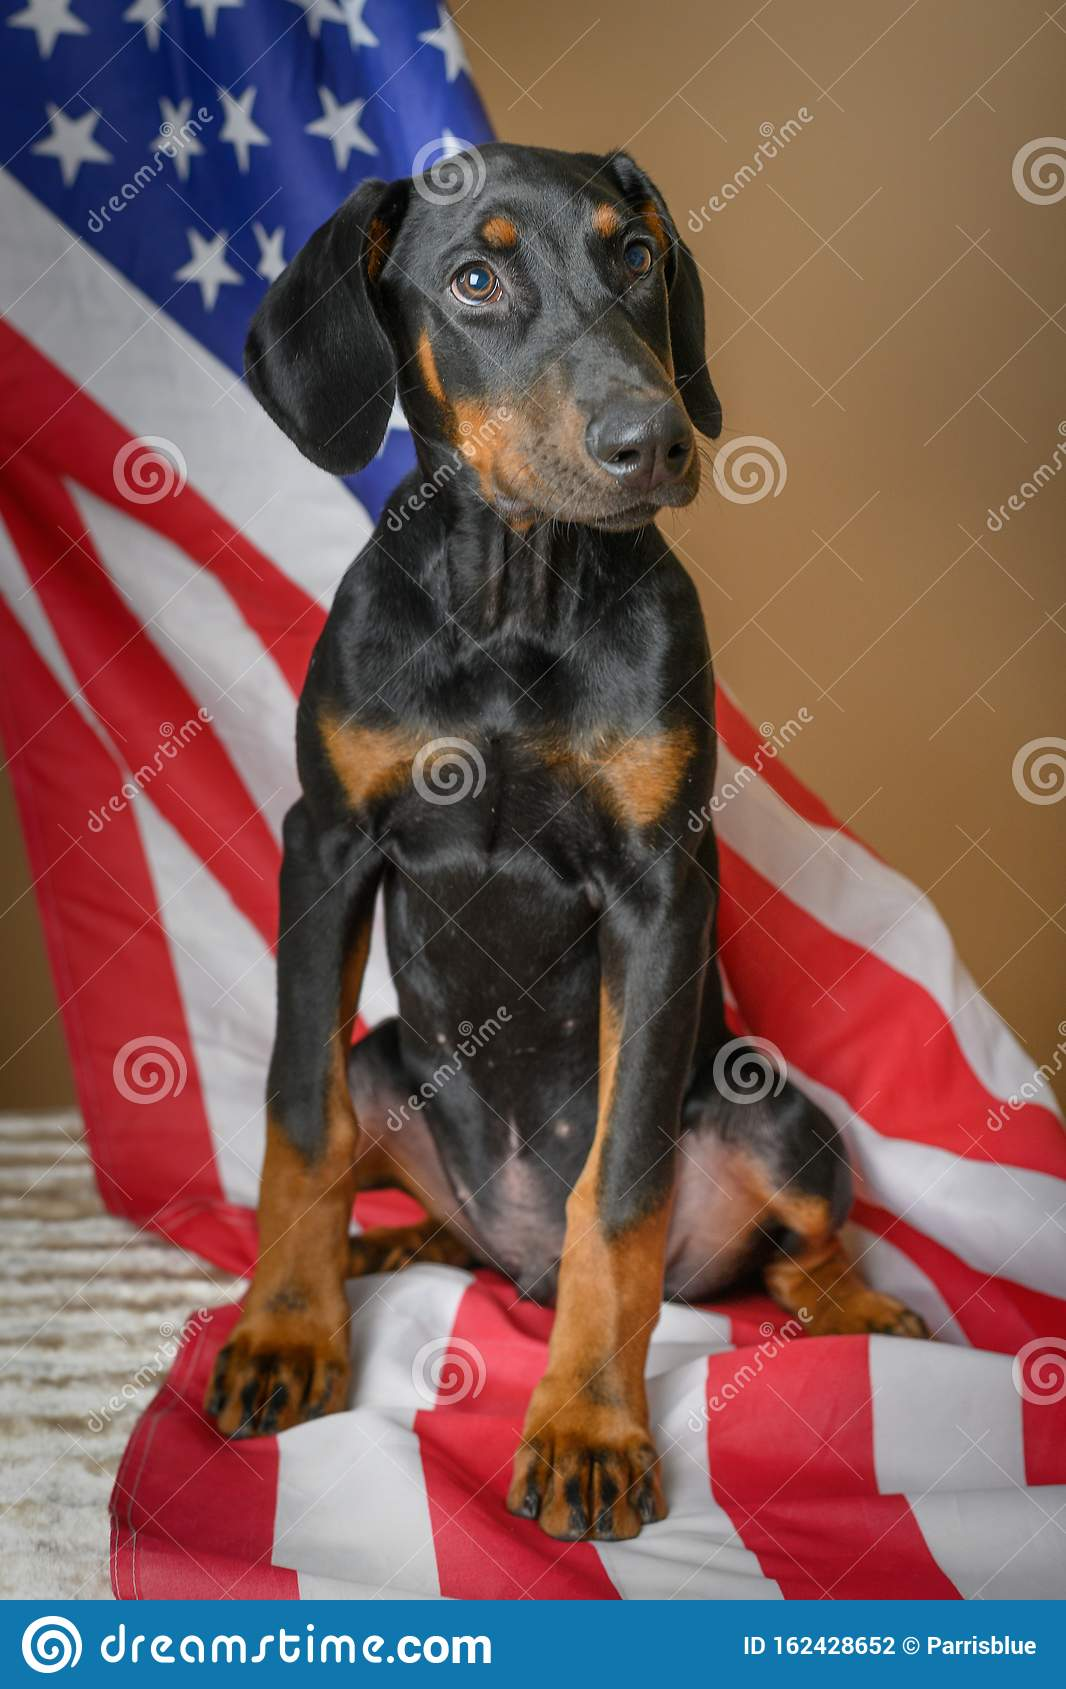 Cute Doberman Pinscher Puppy With American Flag Stock Photo Image Of Beautiful Military 162428652